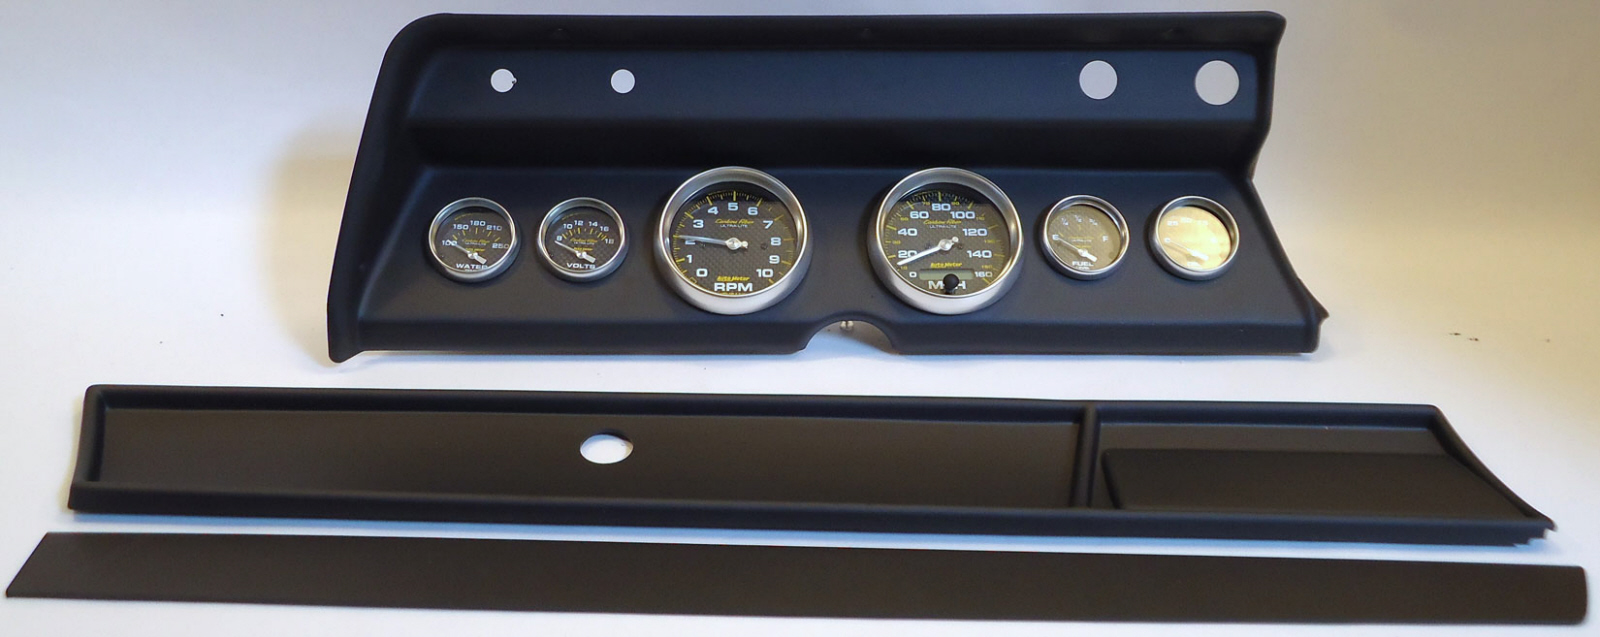 Tach Wiring Auto Electrical Diagram Jtr 280z V8 66 Chevelle Dash Carrier Panel With Meter Carbon